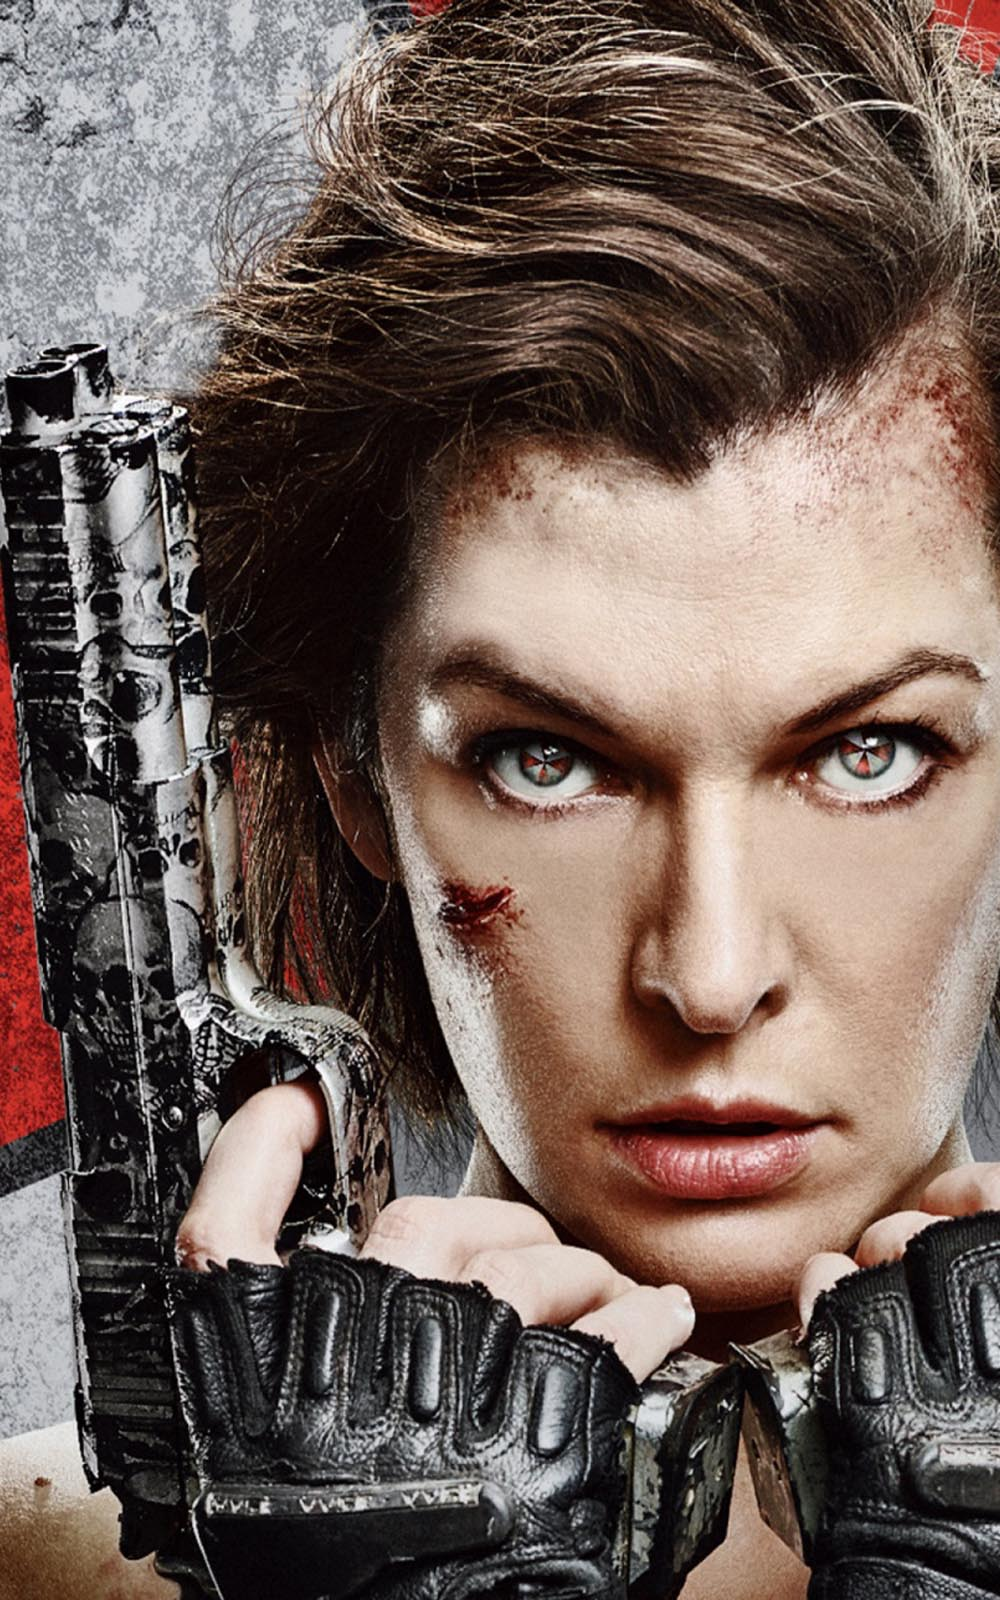 Milla Jovovich From Resident Evil 6 Free Pure 4k Ultra Hd